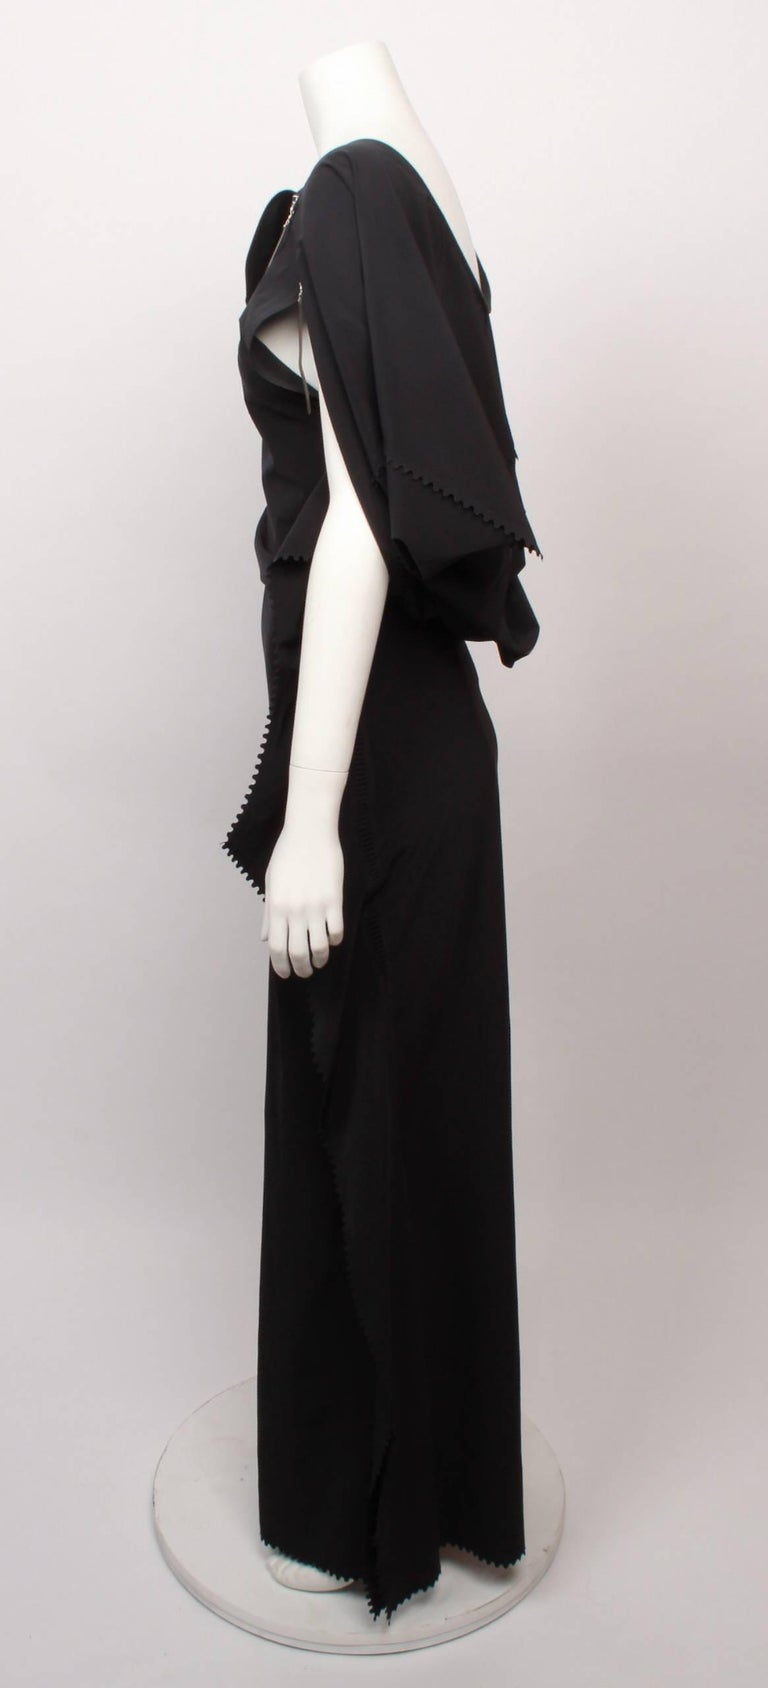 Issey Miyake long black art wear maxi dress  with hi-tech feature laser cut panels and edging, and zippers that unzip to create the neckline and armholes. Zippers have decorative opaque white rubber toggles.  Back bodice is draped to the waist and